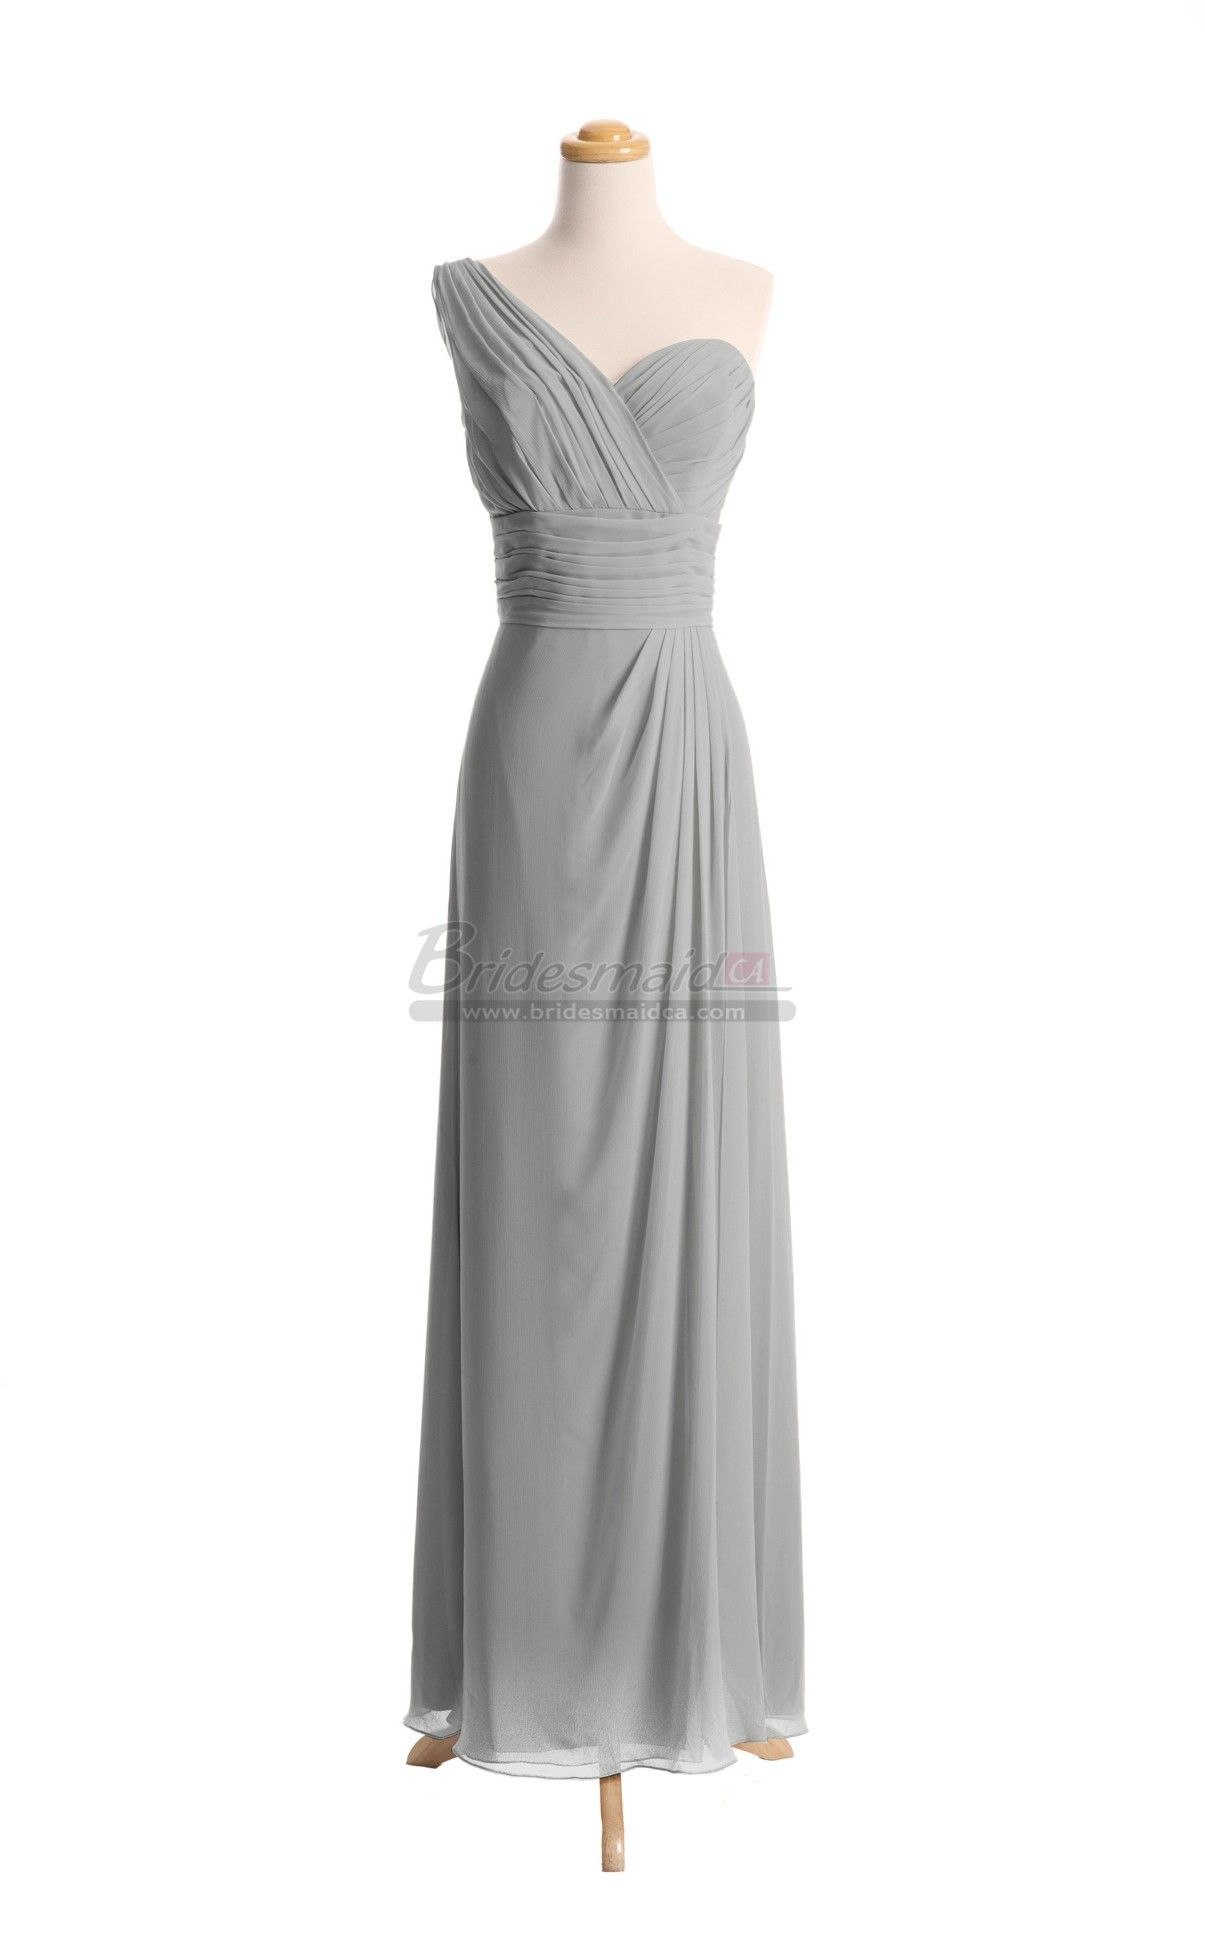 One shoulder chiffon long silver bridesmaid dress in grey dresses one shoulder chiffon long silver bridesmaid dress in grey dresses bds ca077 bridesmaidca ombrellifo Image collections